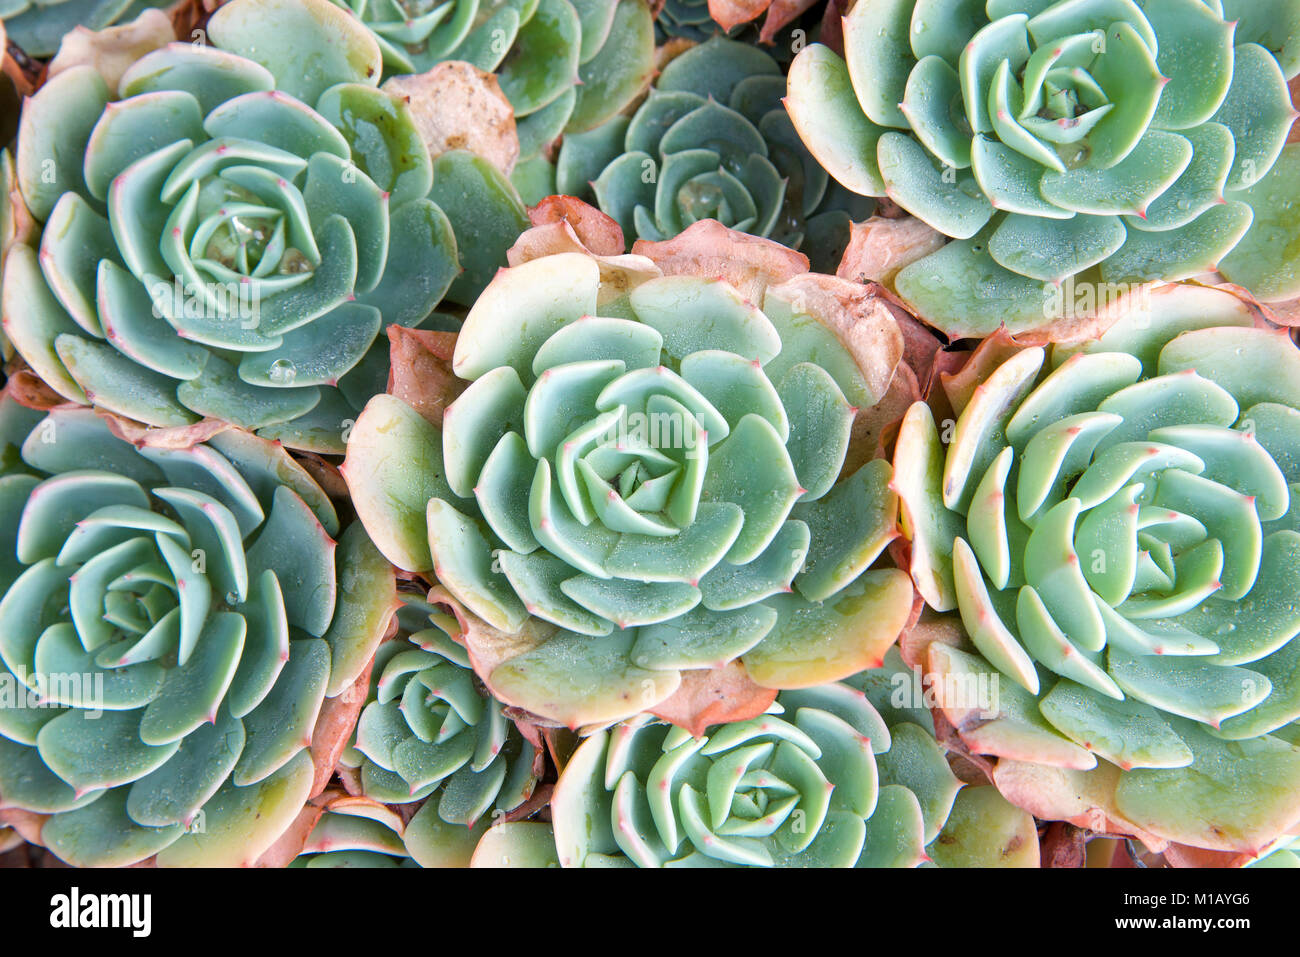 succulent echeveria with dying petals on edges. Echeveria is a large genus of flowering plants native to semi-desert - Stock Image